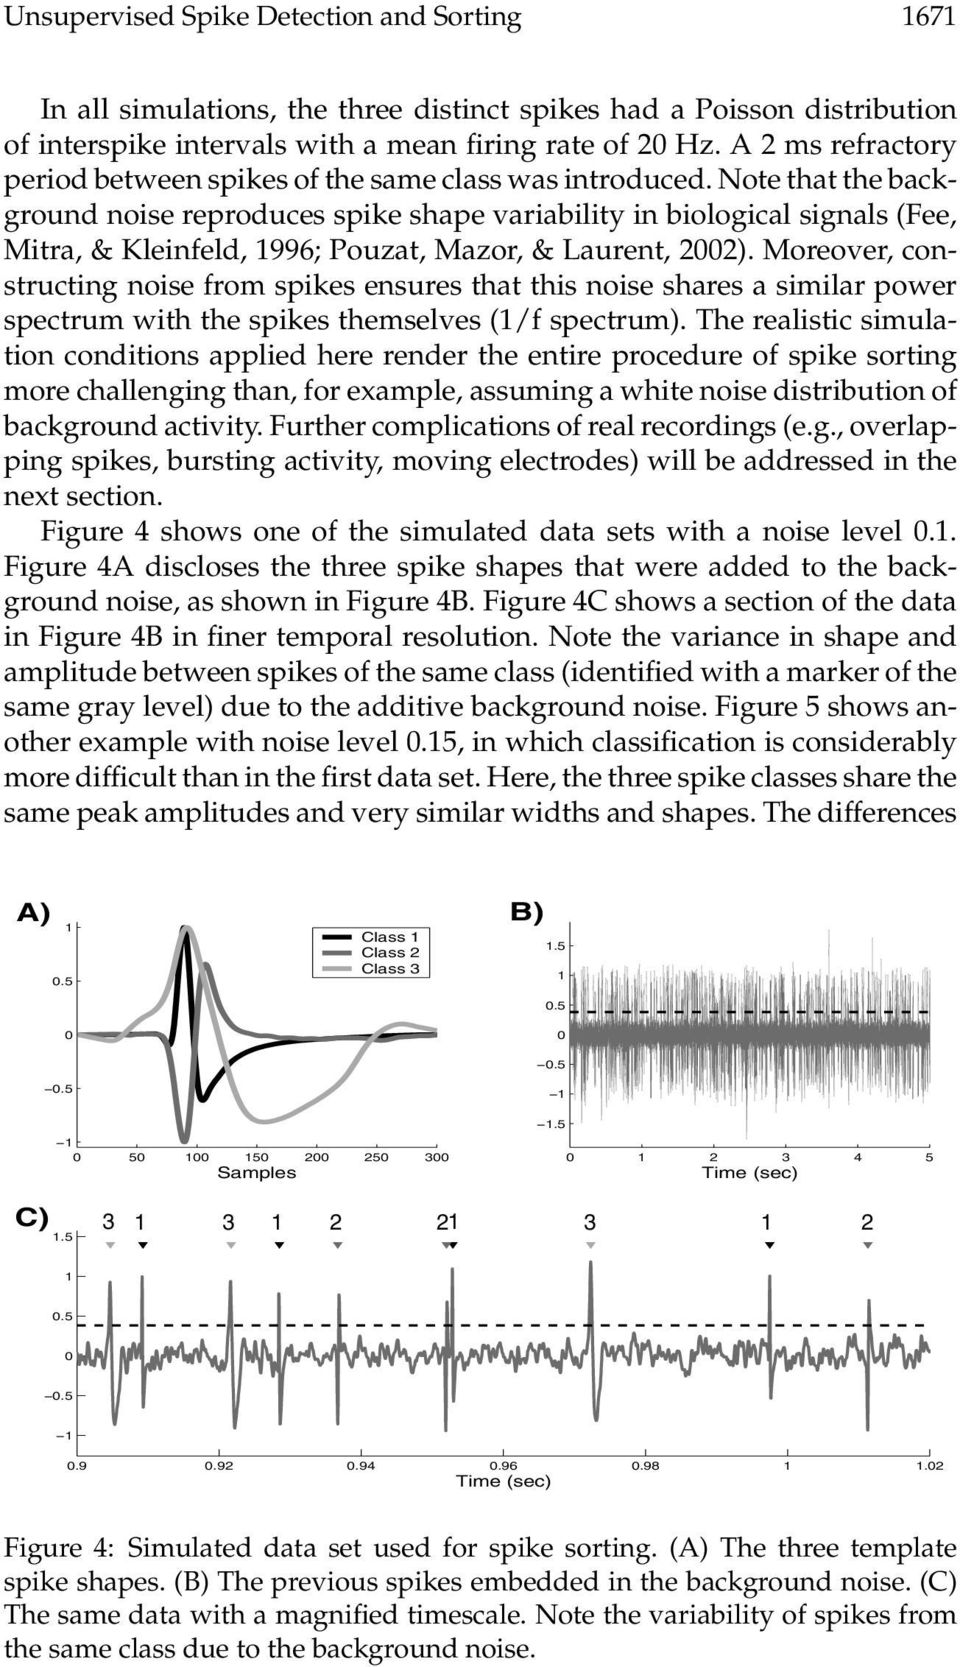 Note that the background noise reproduces spike shape variability in biological signals (Fee, Mitra, & Kleinfeld, 1996; Pouzat, Mazor, & Laurent, 22).